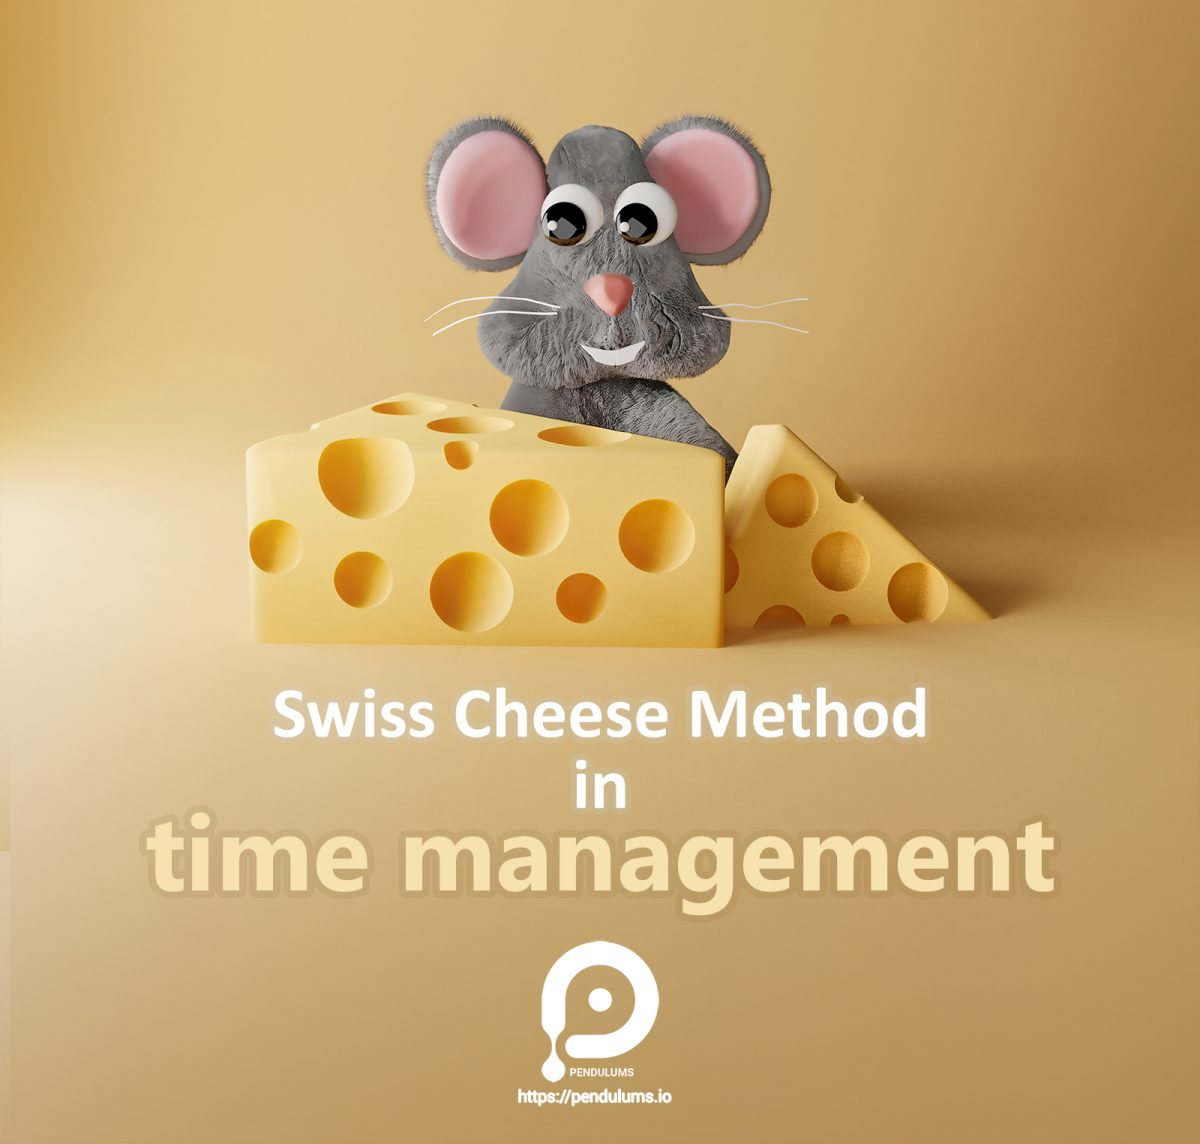 🧀Swiss cheese method in time management means that even if you have little time, do not spend it on small and insignificant tasks, but on doing a part (albeit small) of your important work. (Swiss cheese: Yellow cheese with holes inside.) In this way, even small times are used to do great things, and even those small times are not wasted. Sometimes it is very difficult for us to do some things, by doing small holes (small parts) little by little the work ends. You can also use Pendulums for tracking your time on different tasks that are doing, it's available on (Windows, Mac, Linux and Android)